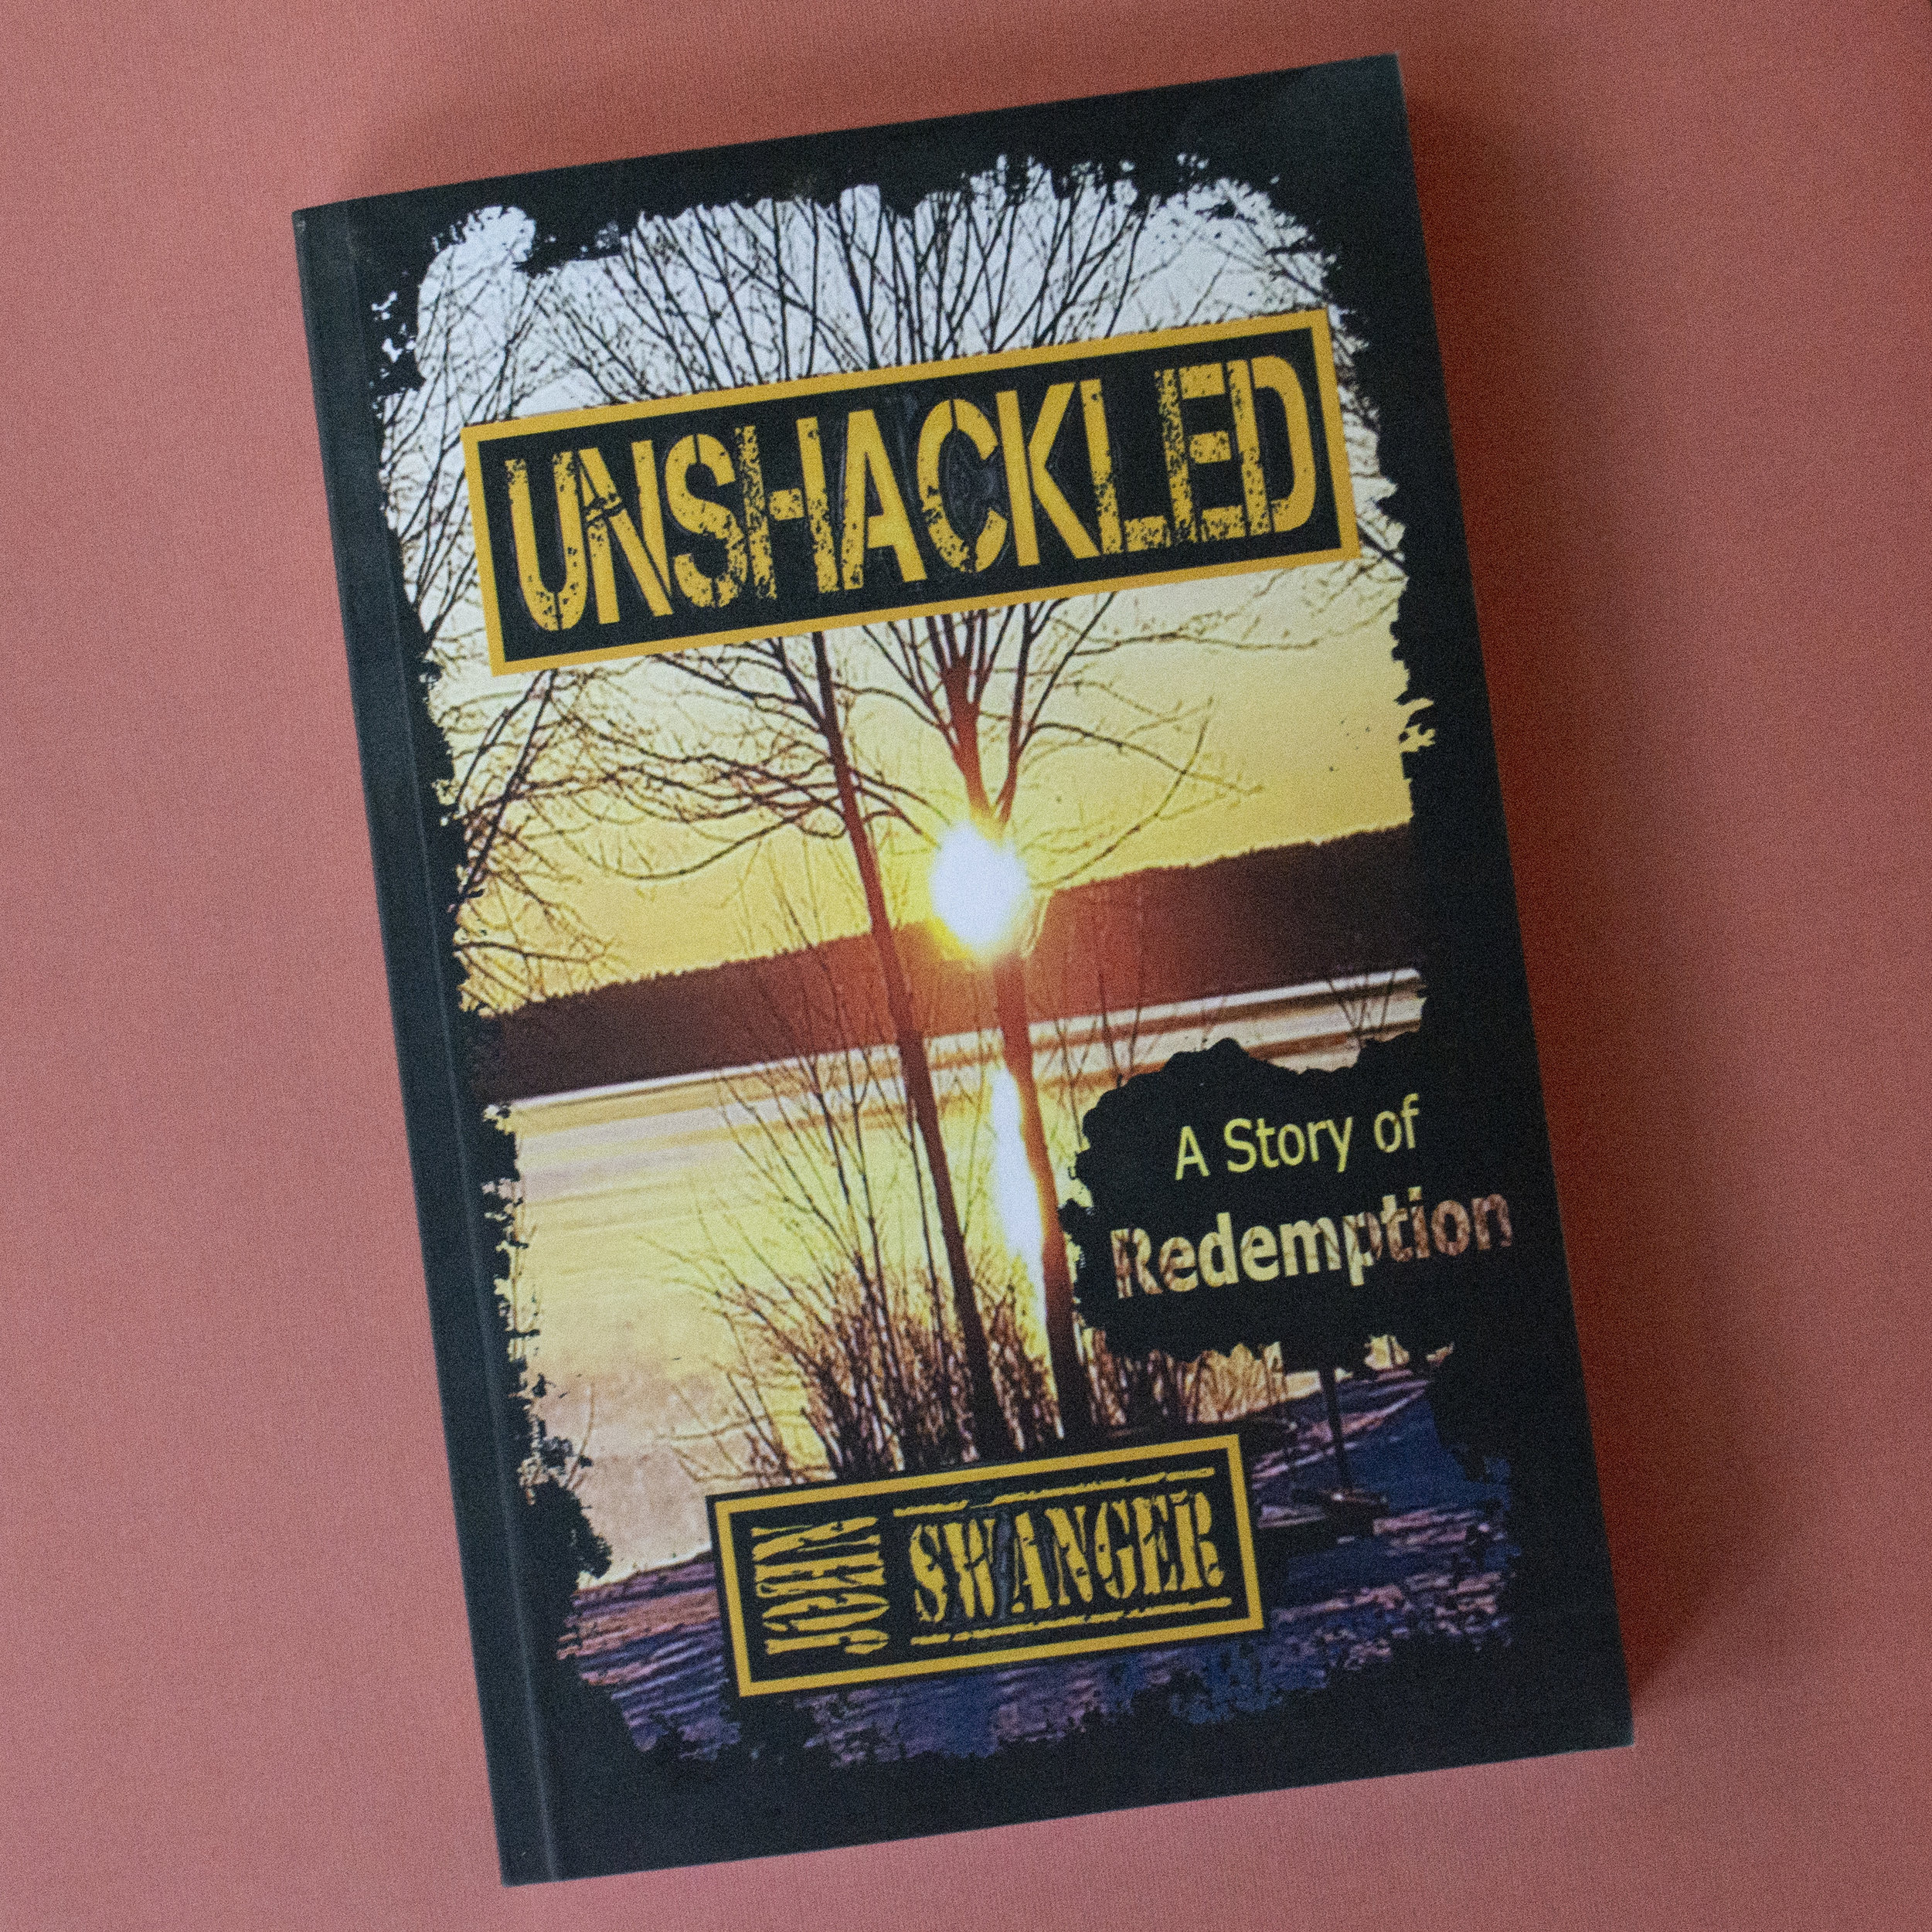 Unshackled: A Story of Redemption - John Swanger - At the age of 18, John Swanger gained the reputation of being one of America's most prolific armed robbers. Sentenced to serve 30 years in prison, he was set free after only four.But a prison of the body is not the same as a prison of the heart… as Swanger relates in his second book. In a continuation of his first book Shackled: A Story of Redemption, Swanger tells the gripping tale of how he went from inmate to evangelist, from prisoner to pastor, called to set prisoners free.Learn more on John's website: www.johnswanger.org